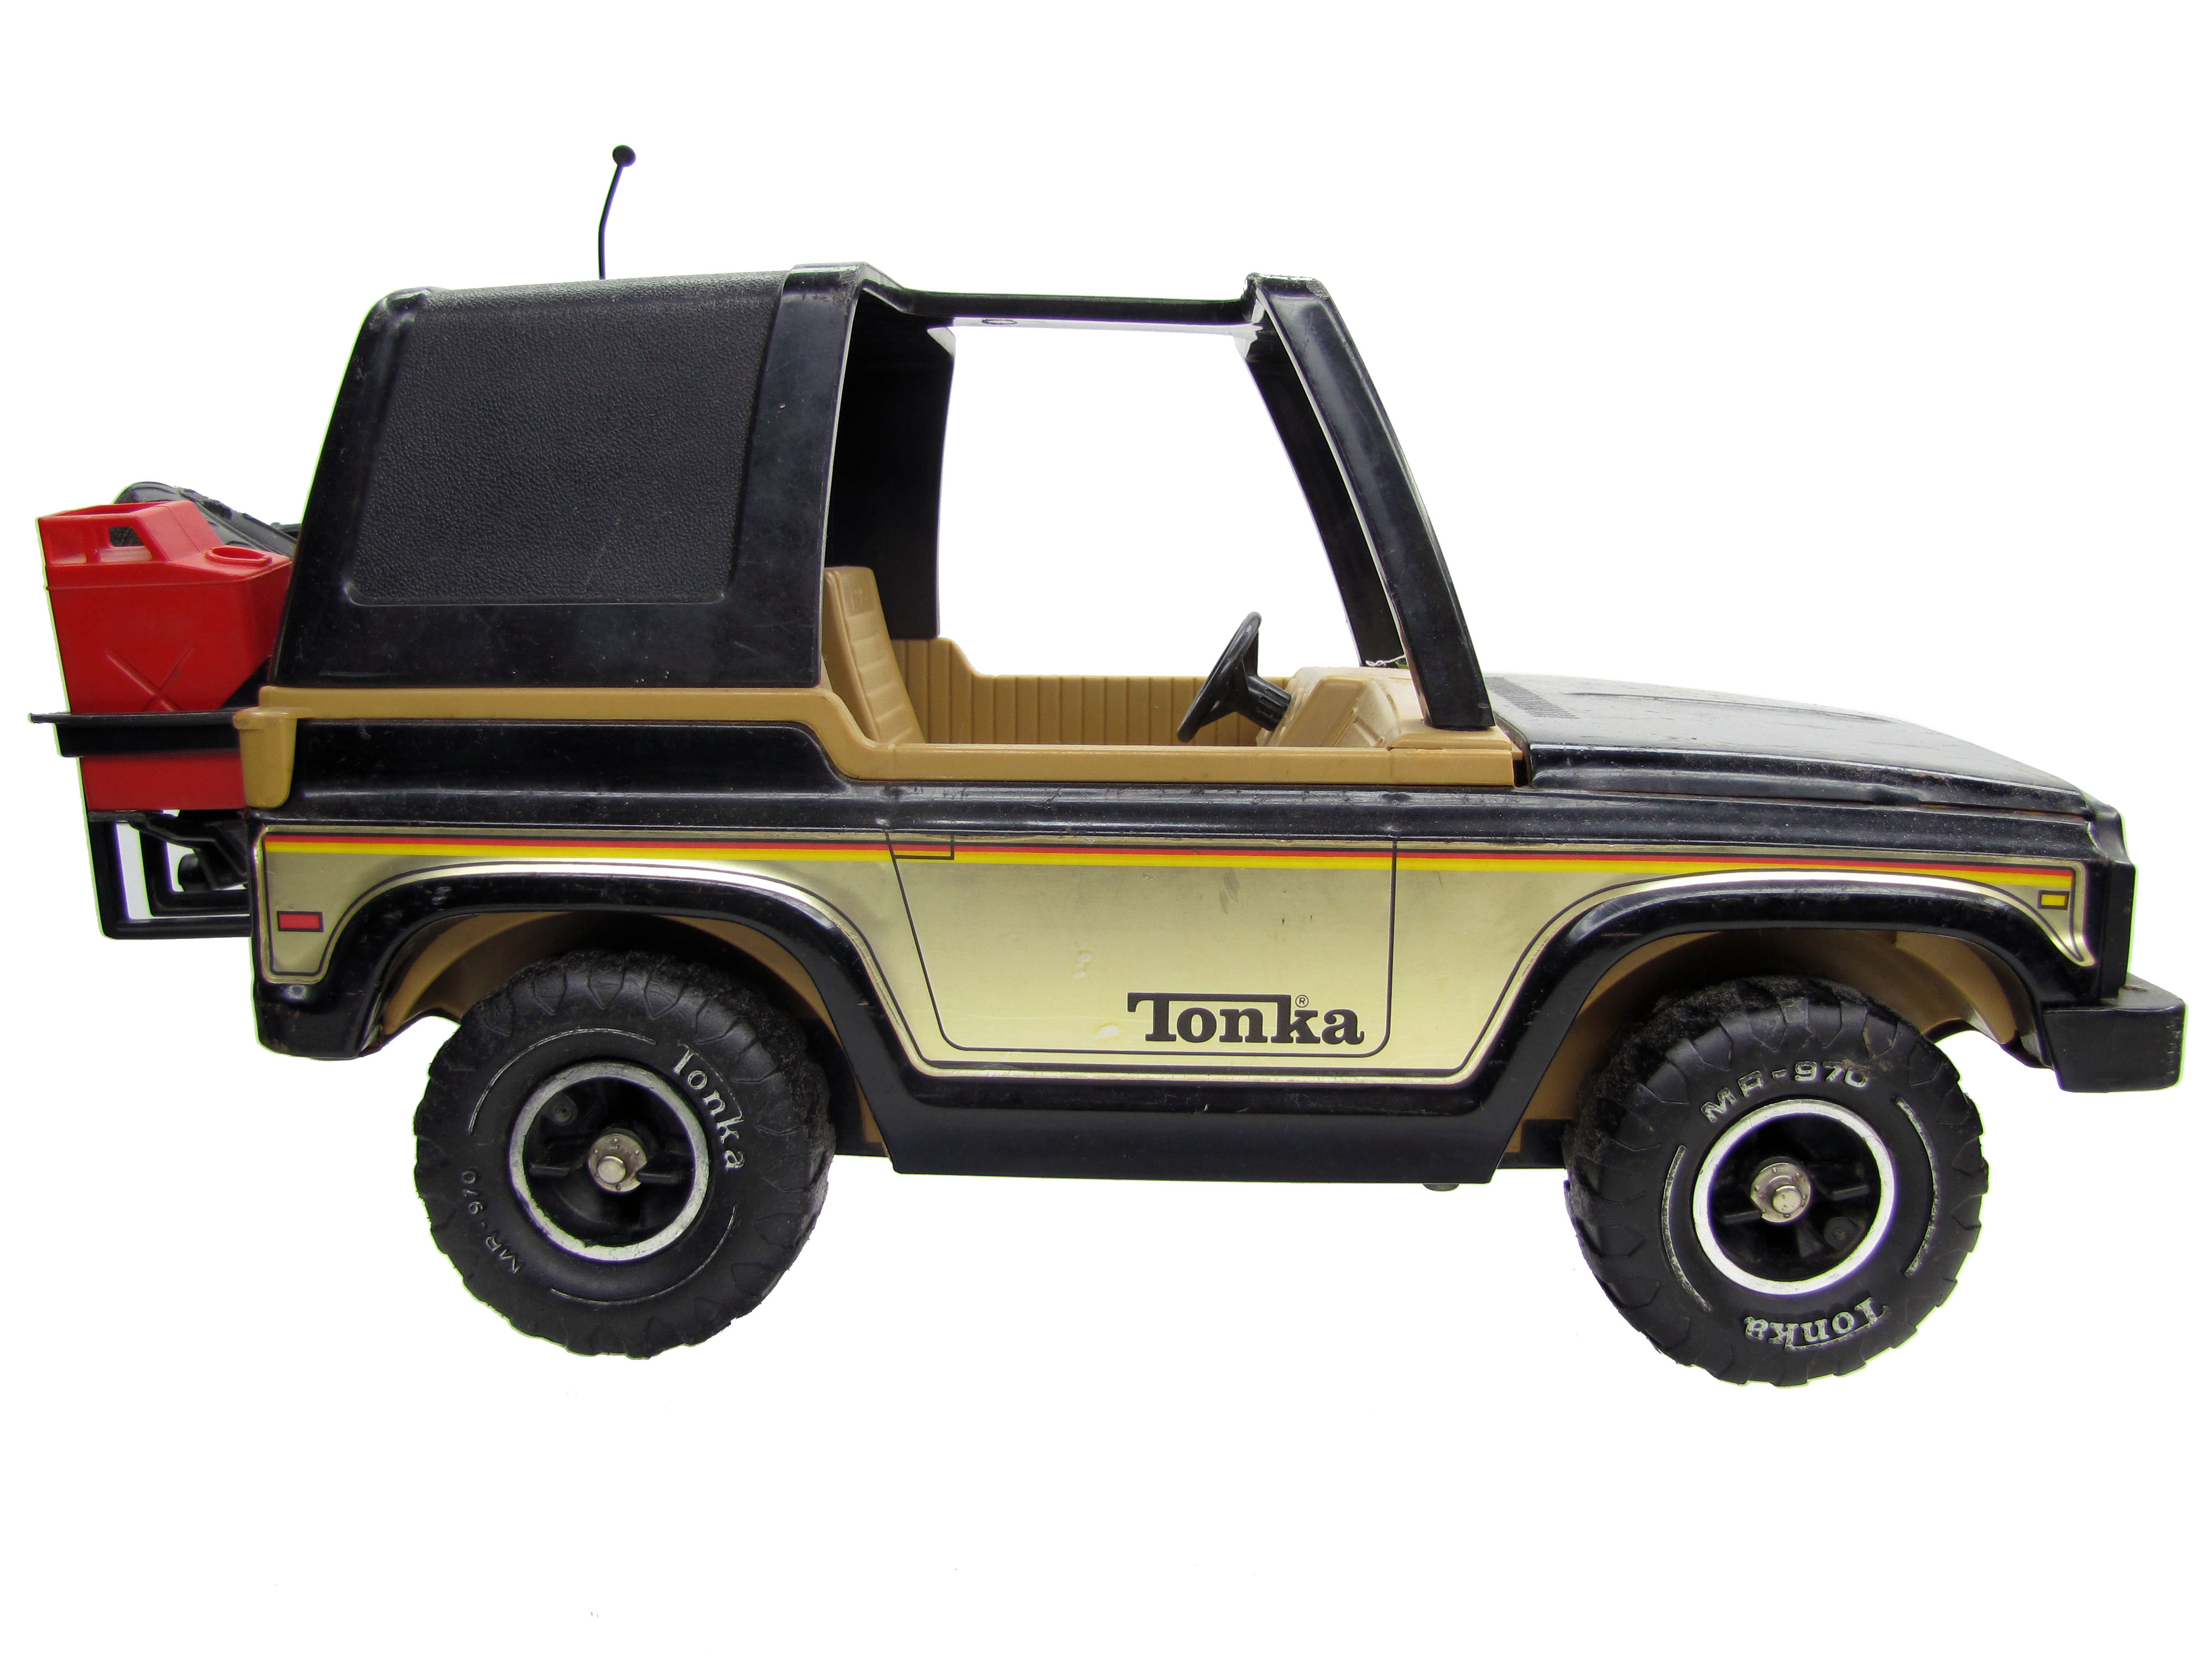 Cars And Trucks My Generation Toys 1980 Ford Bronco Frame 1970s Vintage Mr 970 Mighty Tonka Black Jeep Complete